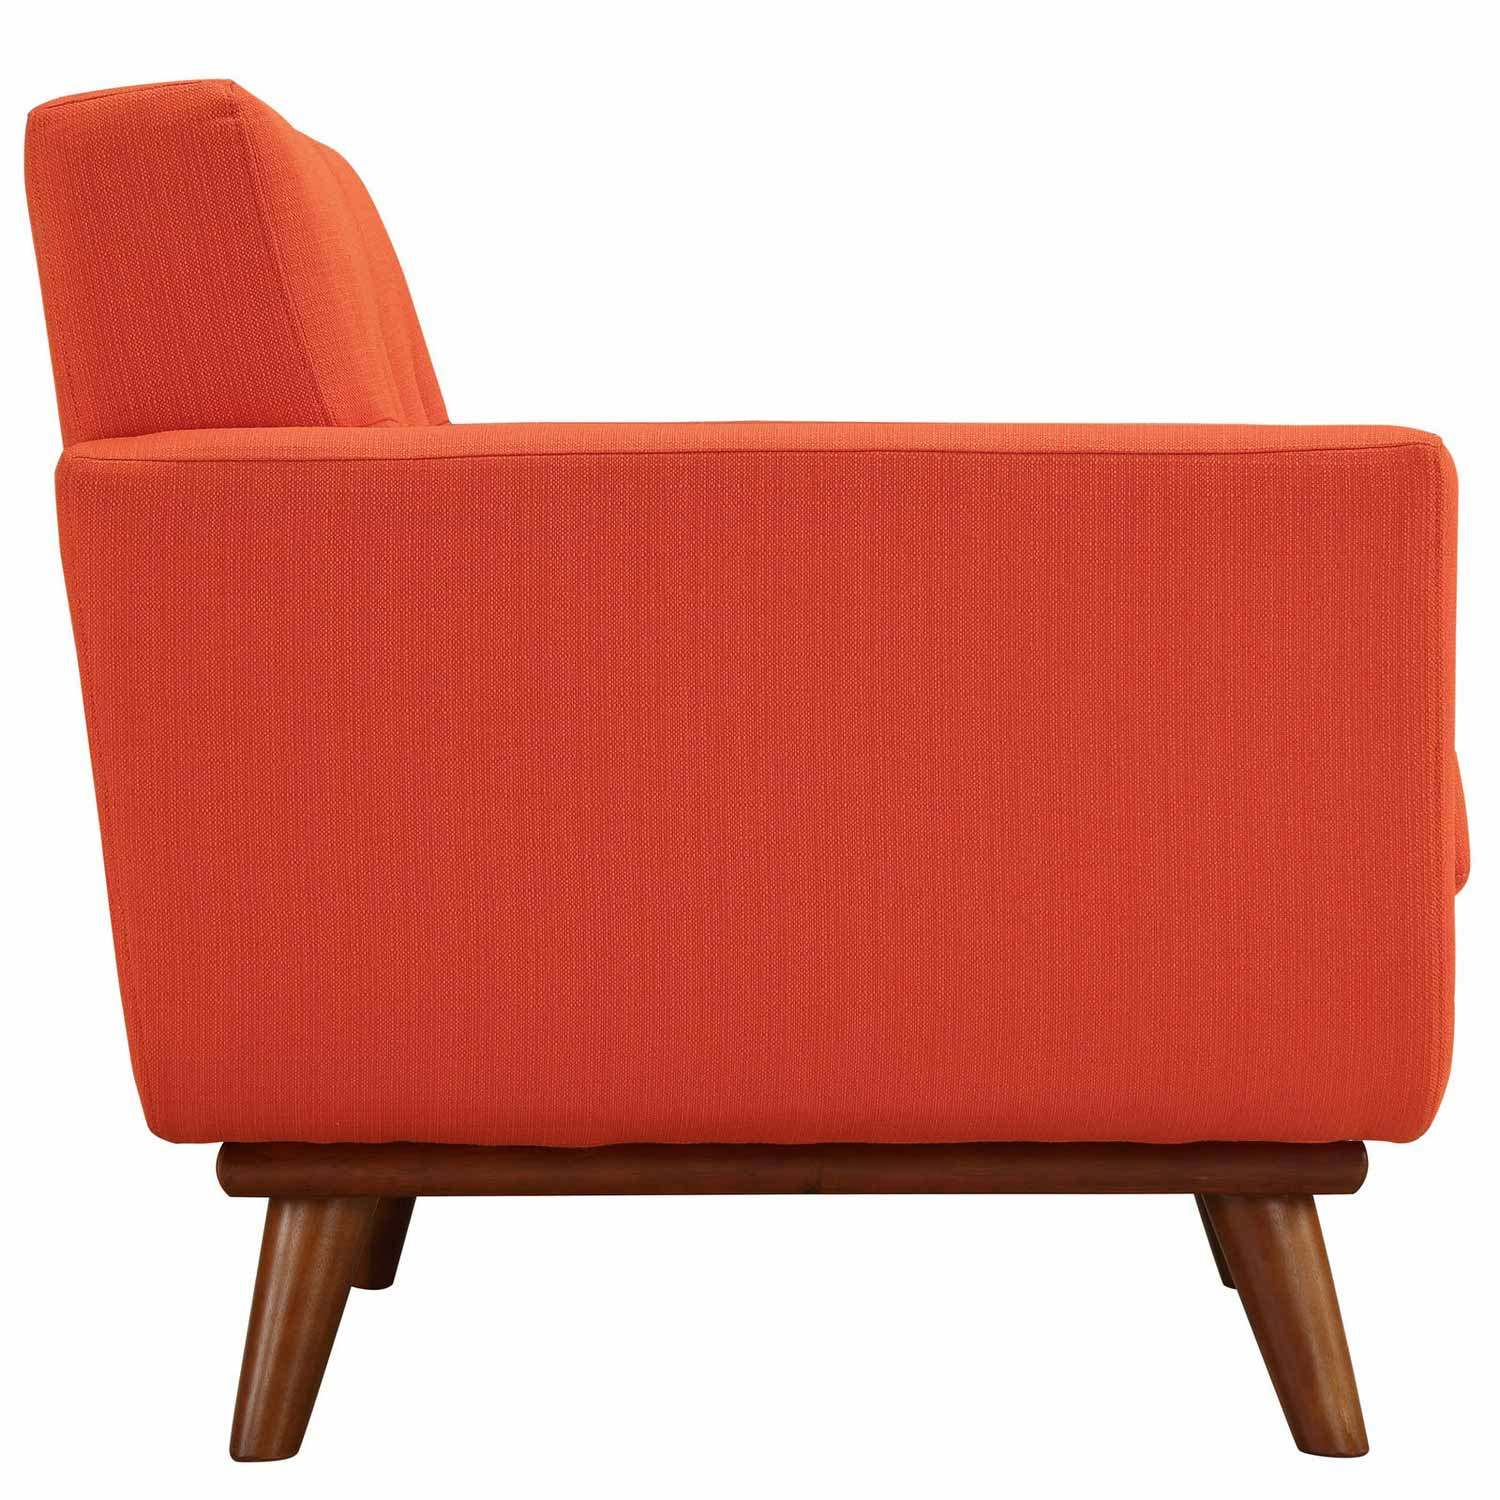 Modway Engage 3 PC Sofa Loveseat and Armchair Set - Atomic Red